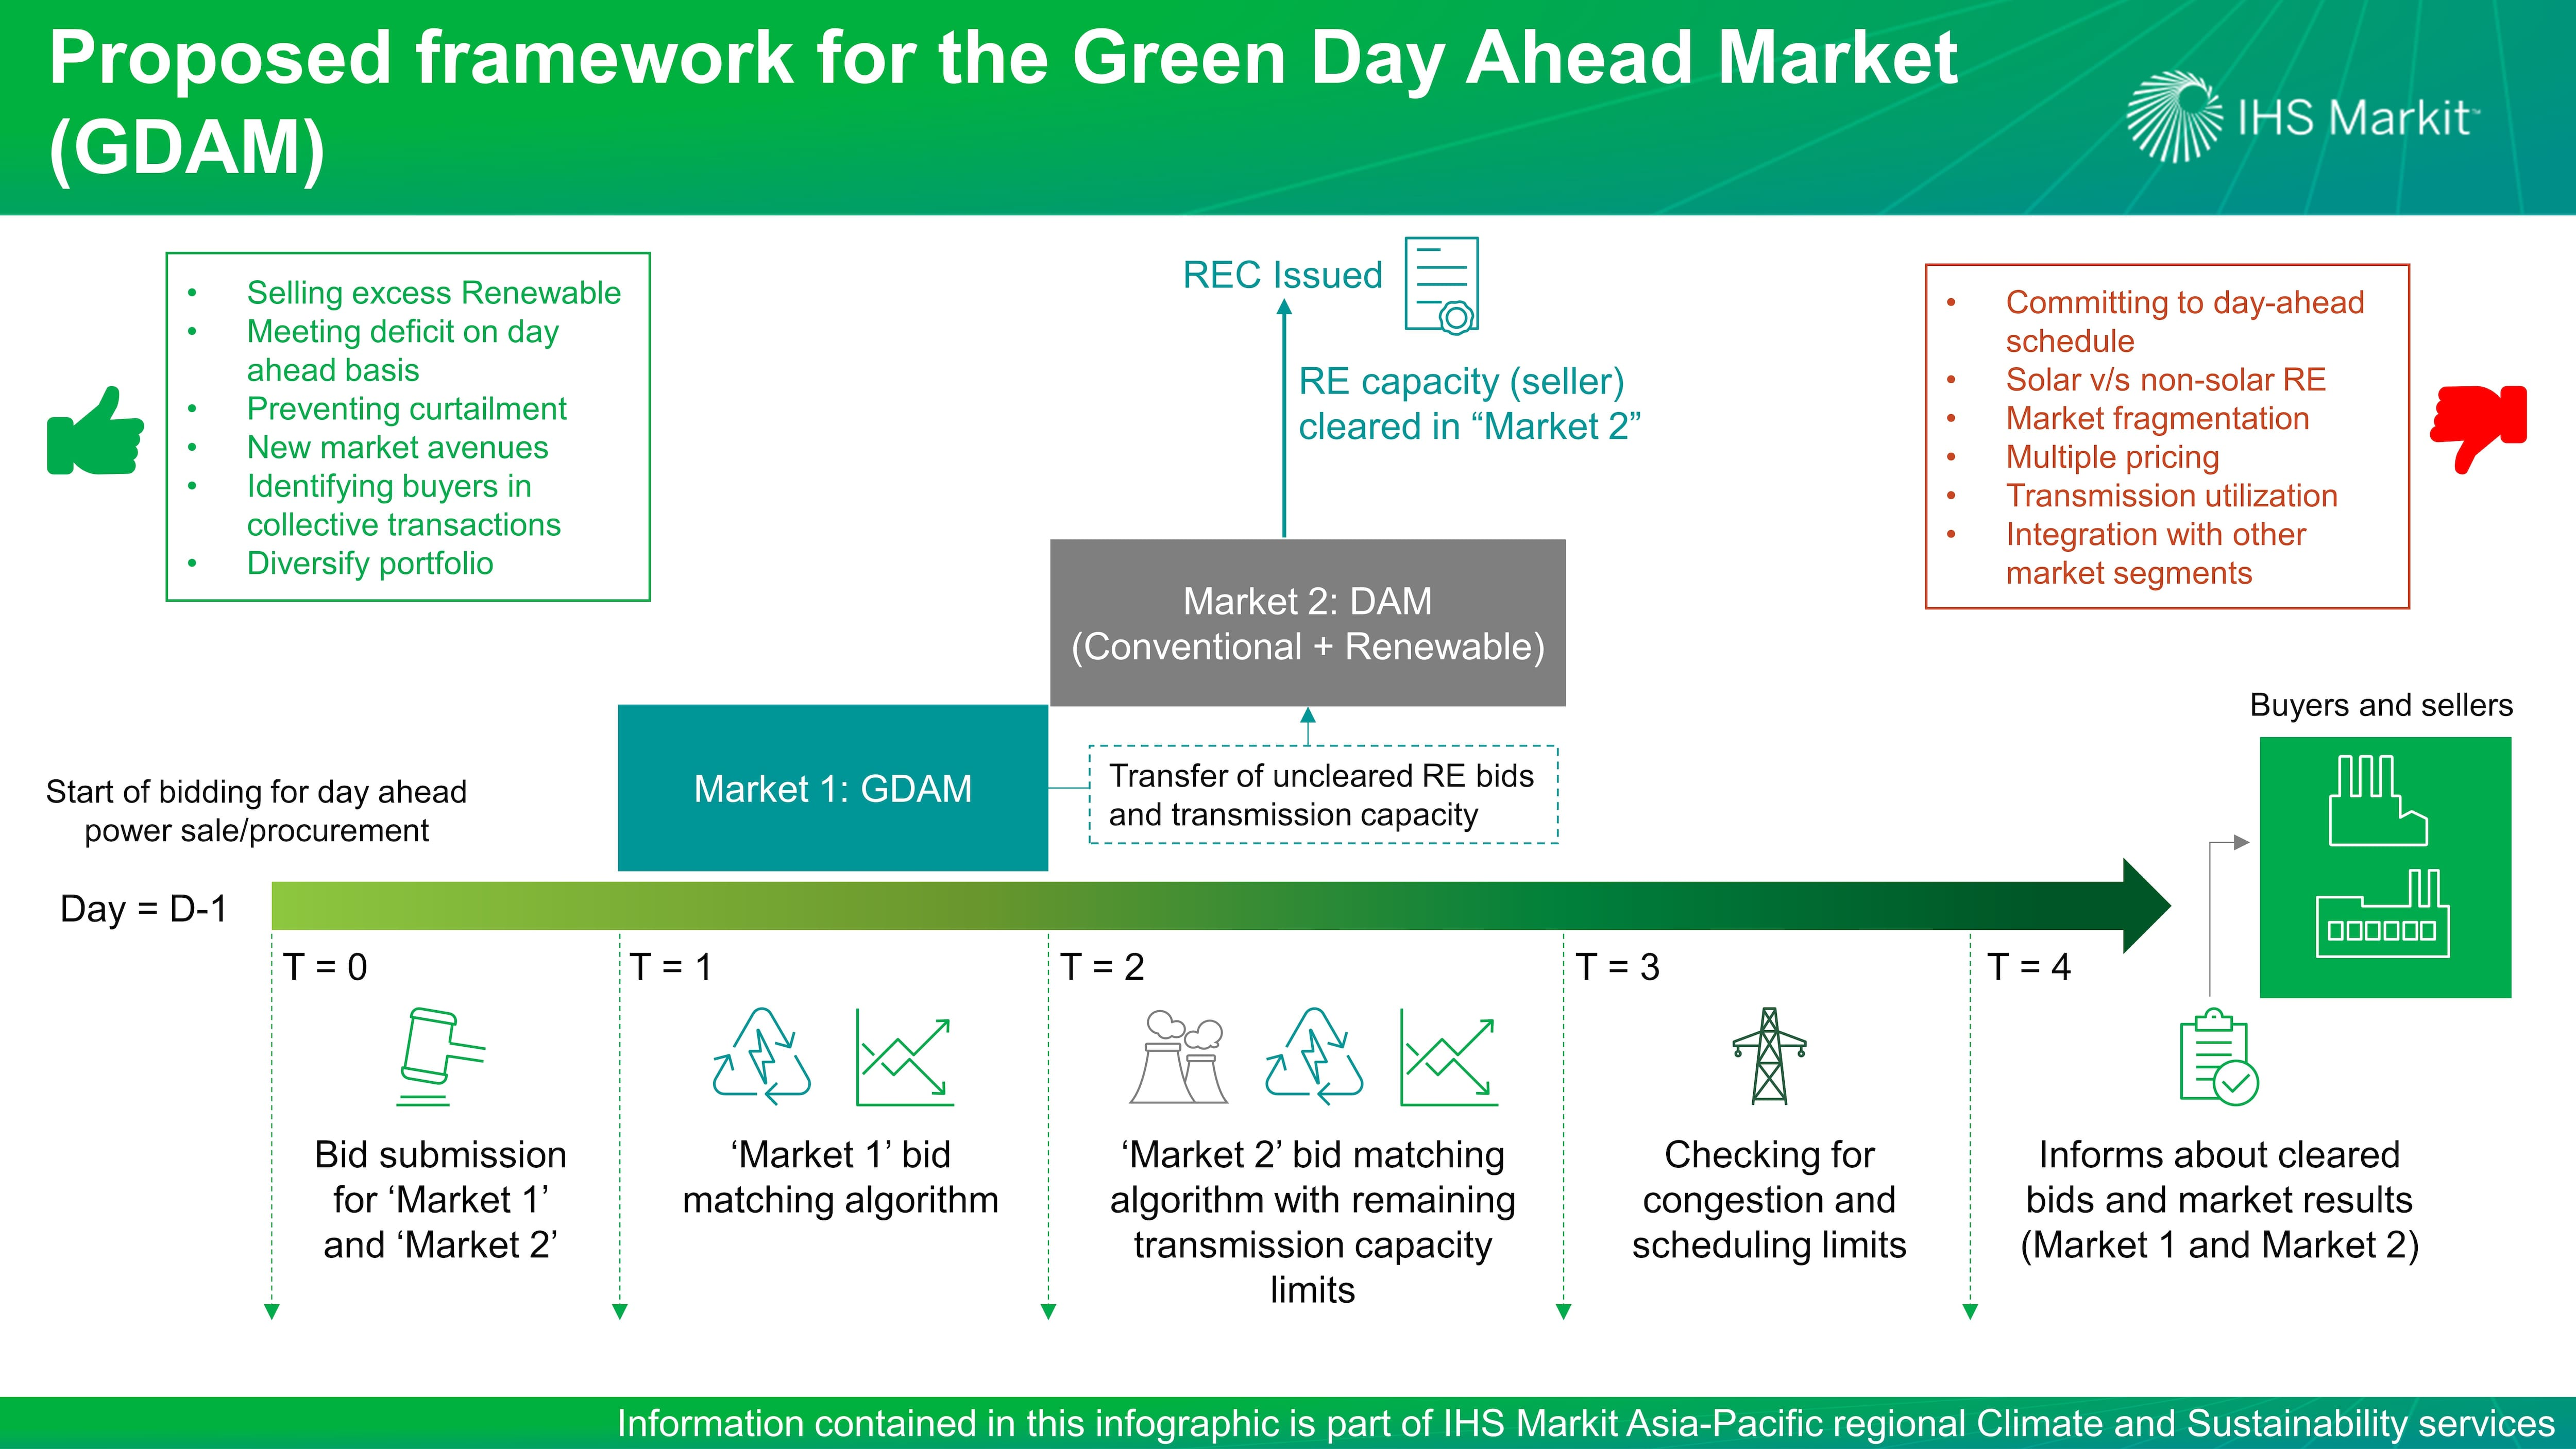 Proposed framework for the Green Day Ahead Market